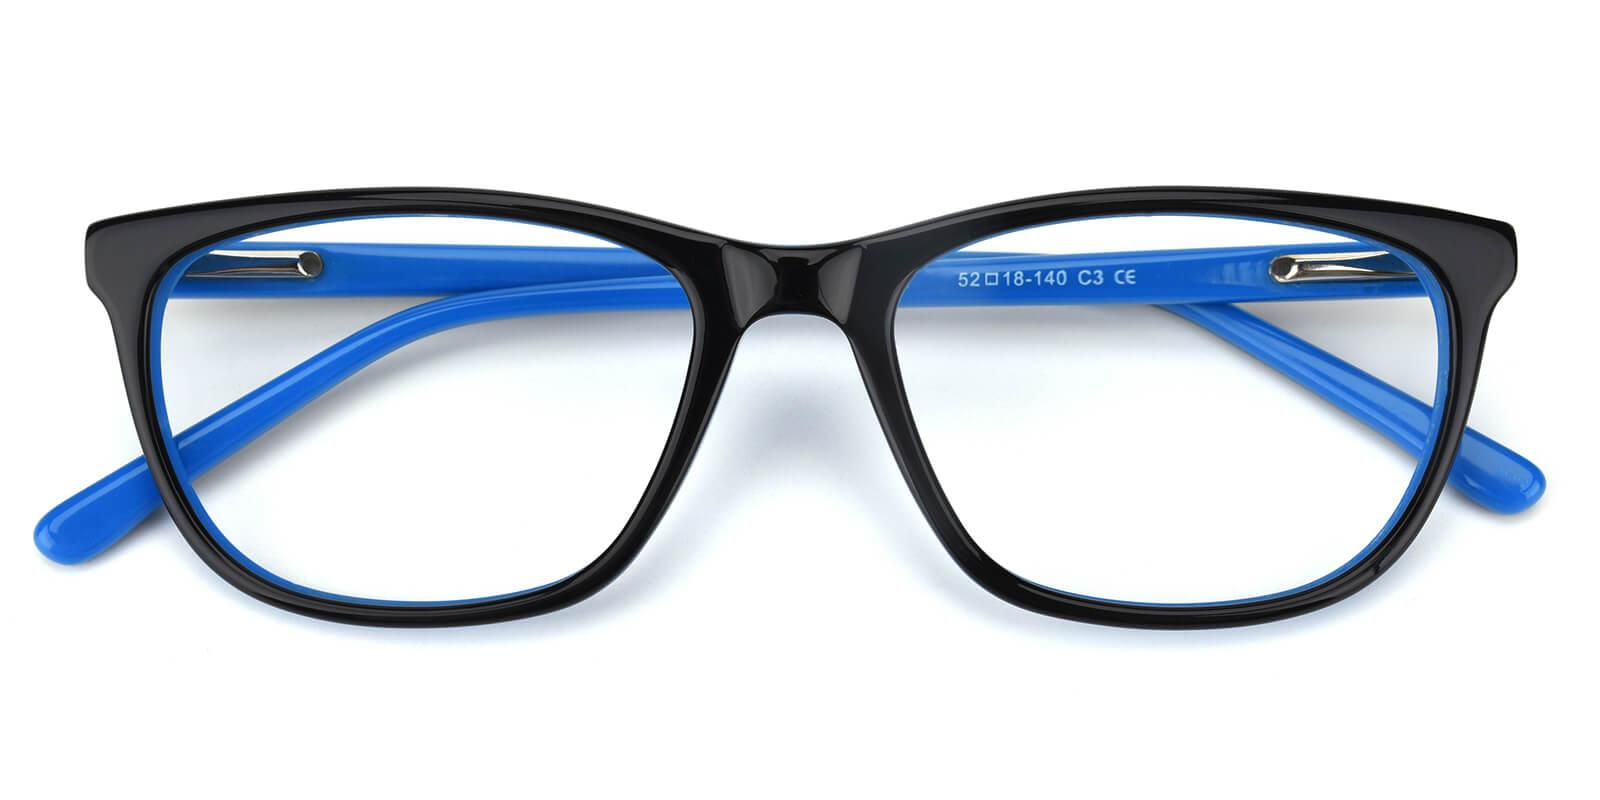 Emblem-Blue-Square / Cat-Acetate-Eyeglasses-detail